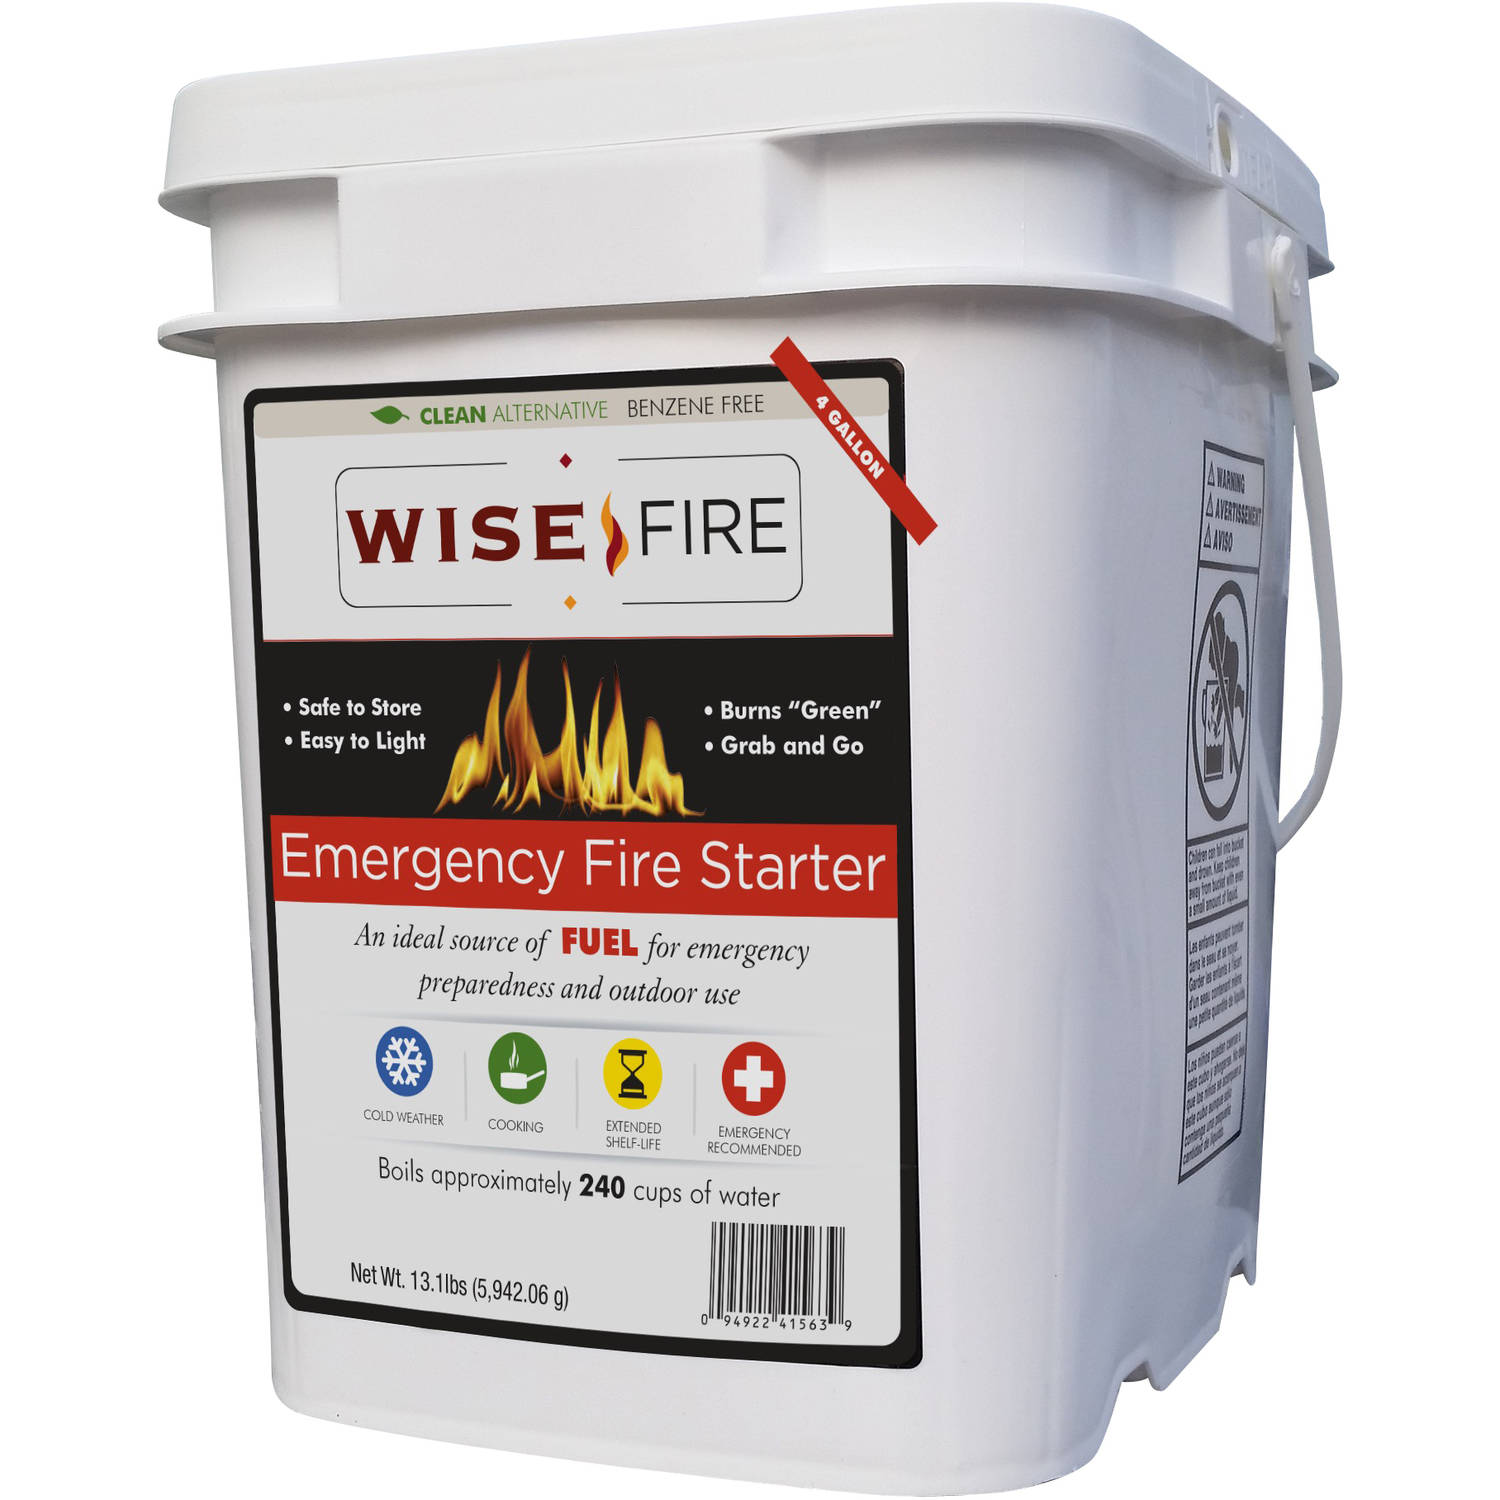 WiseFire Emergency Fire Starter, 13.1 lbs by Wise Company, Inc